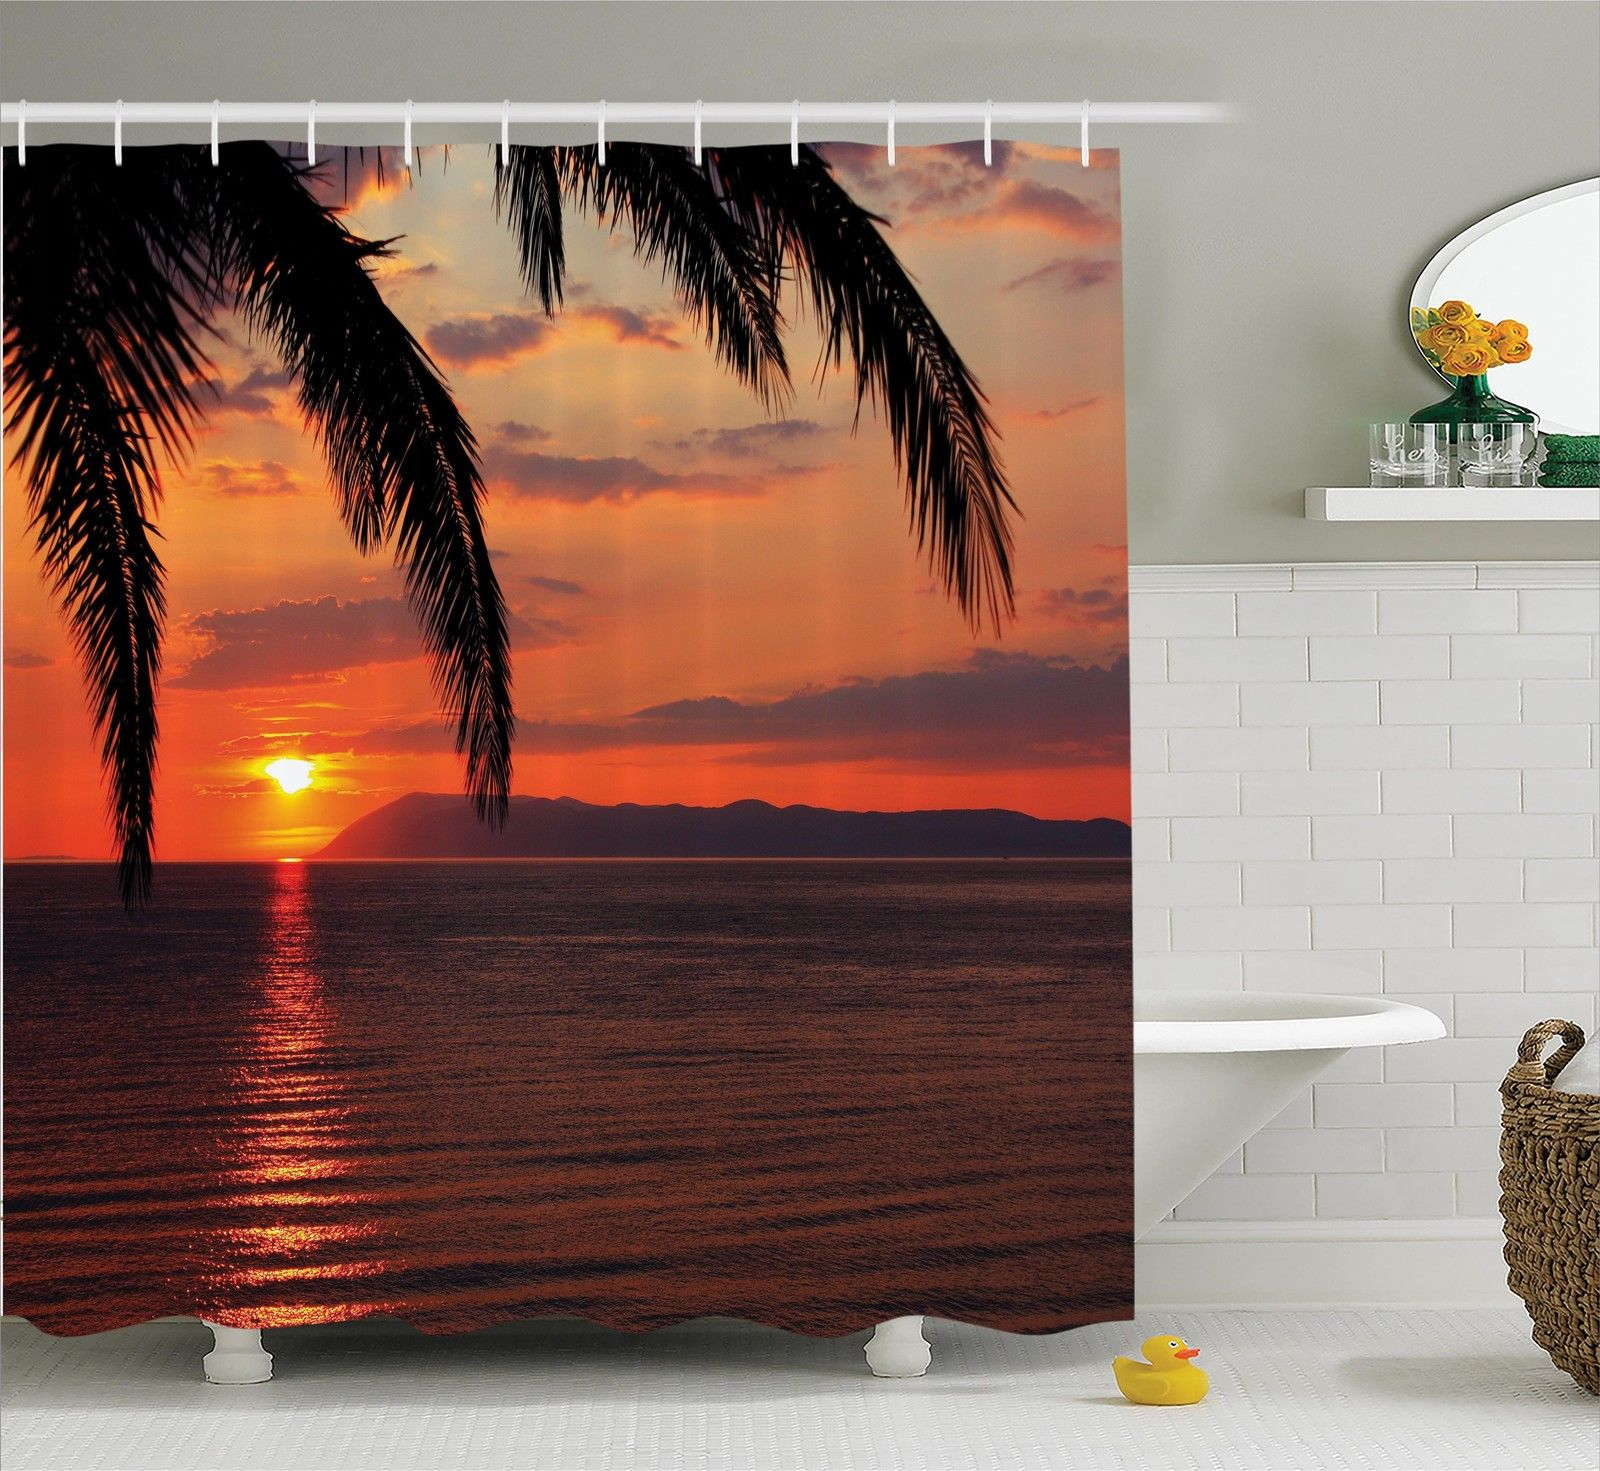 Palm Trees Exotic Holiday Honeymoon Romantic Beach Scenery Shower Curtain Set